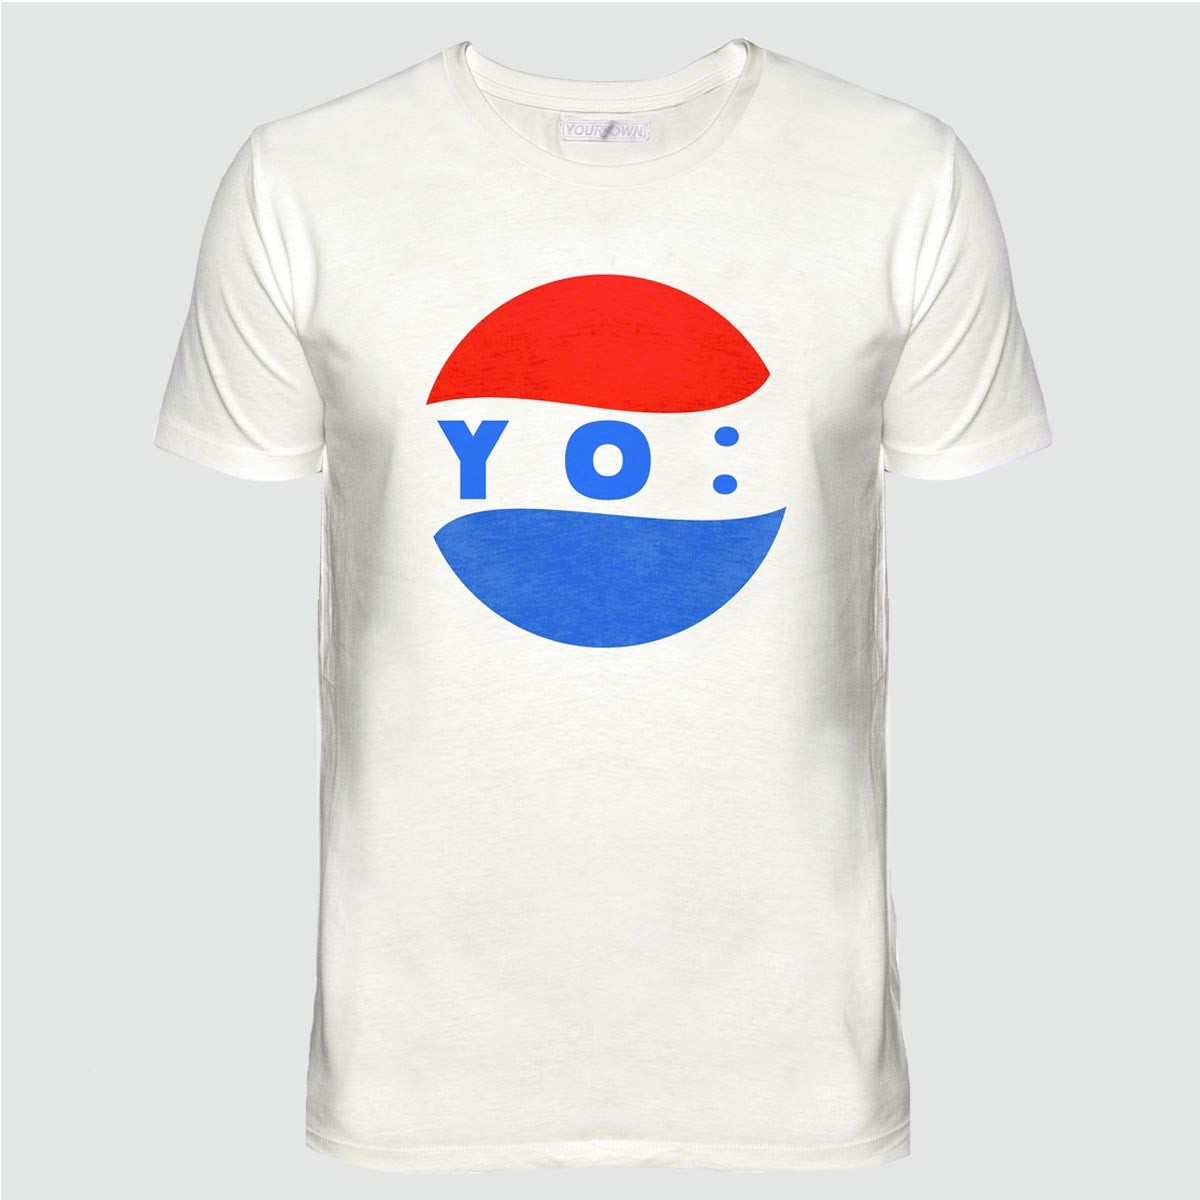 YO 'VIDAL' T SHIRT CREAM